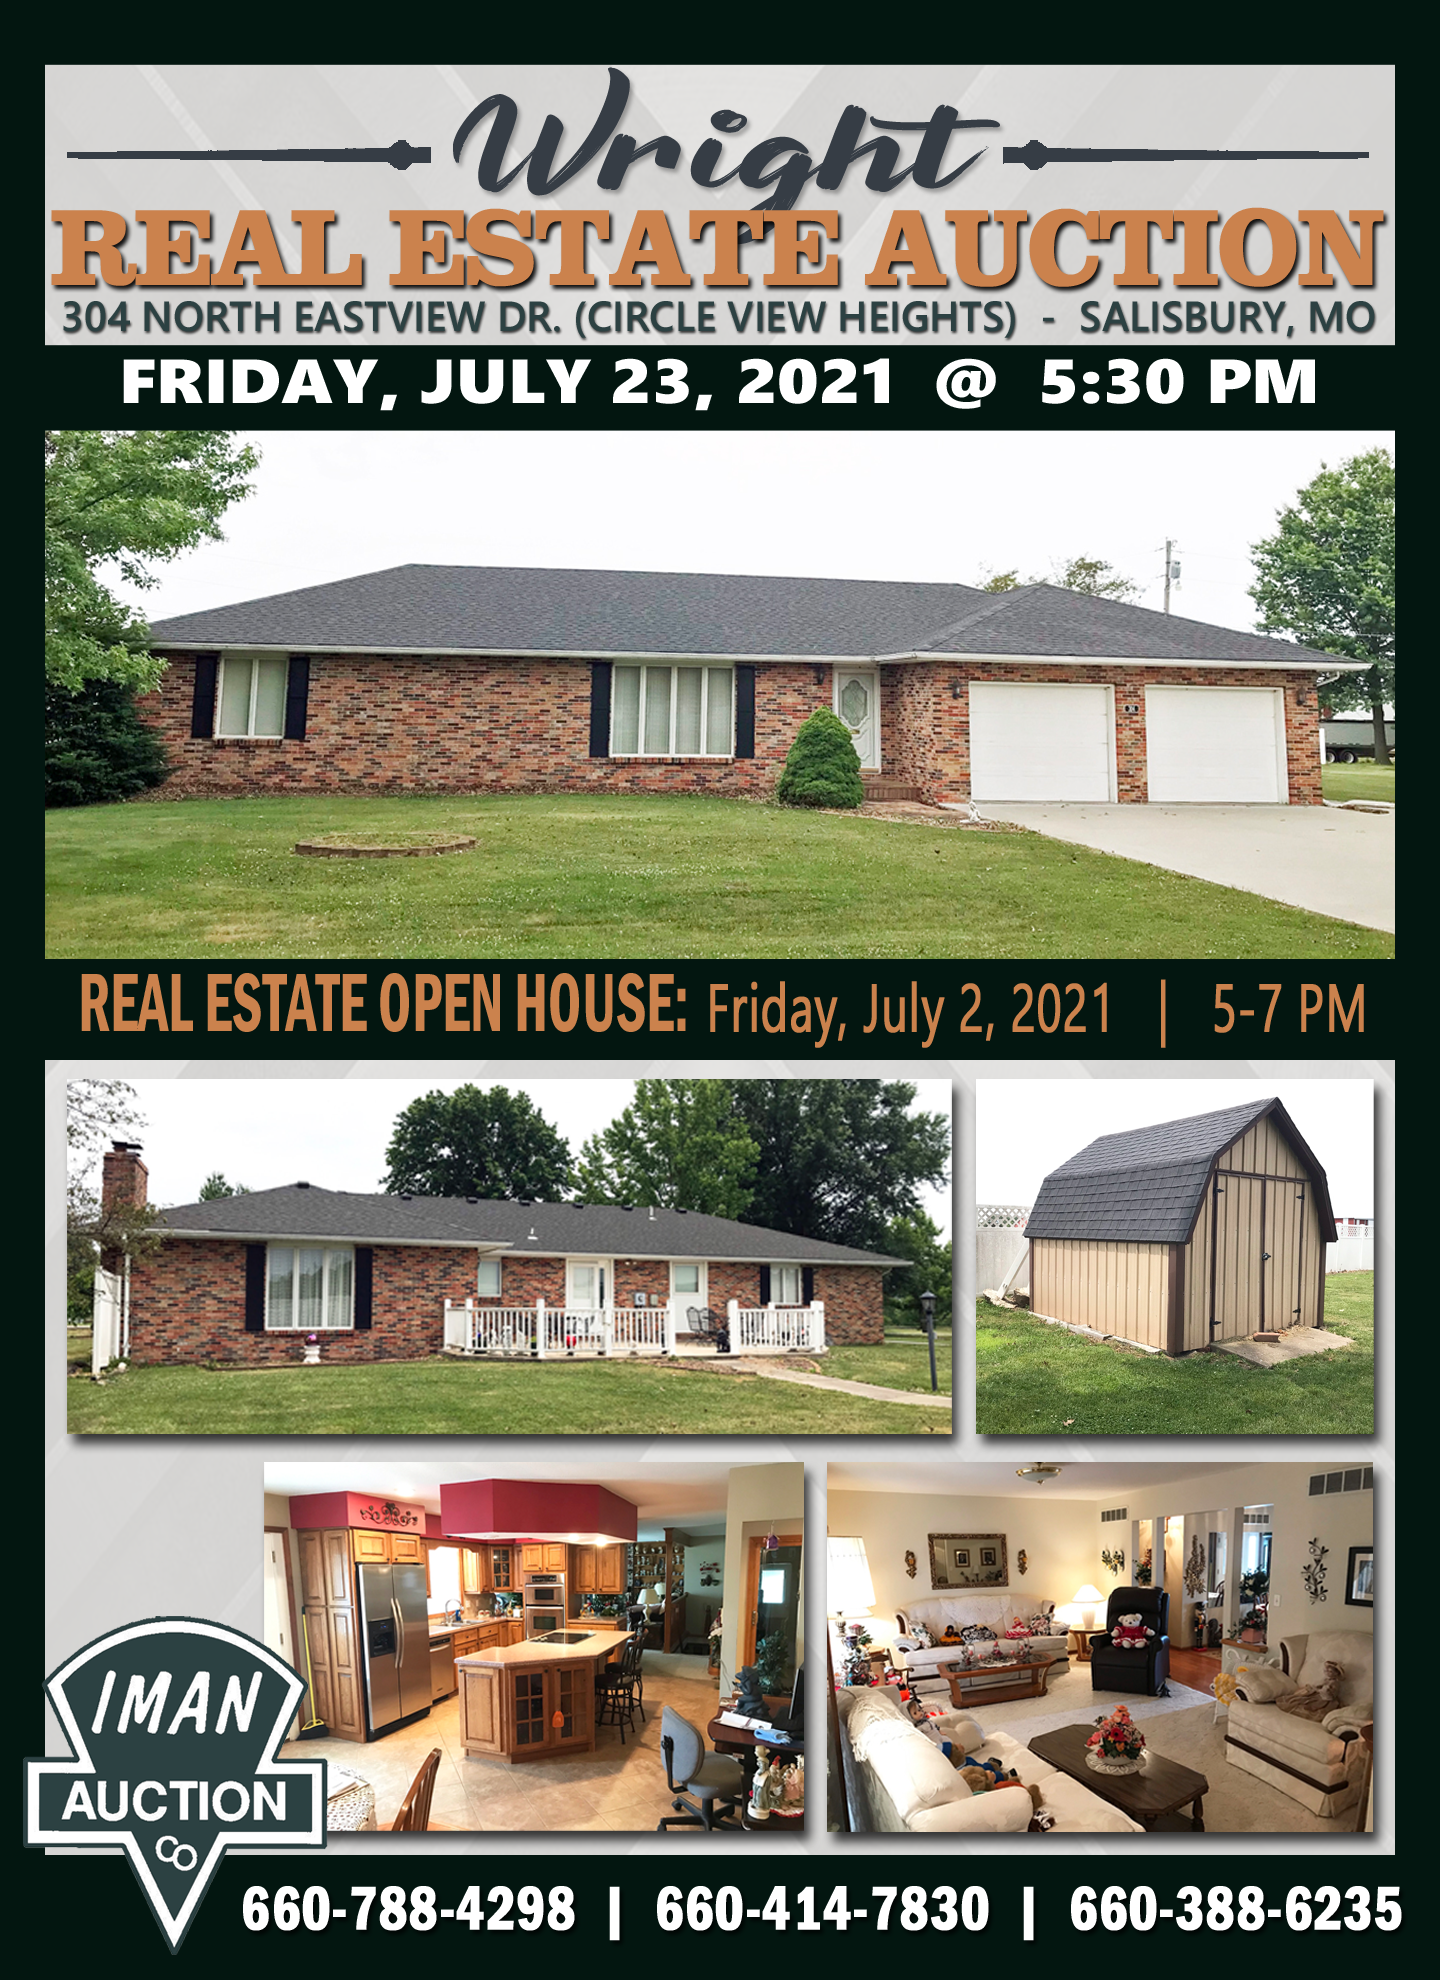 WRIGHT REAL ESTATE AUCTION